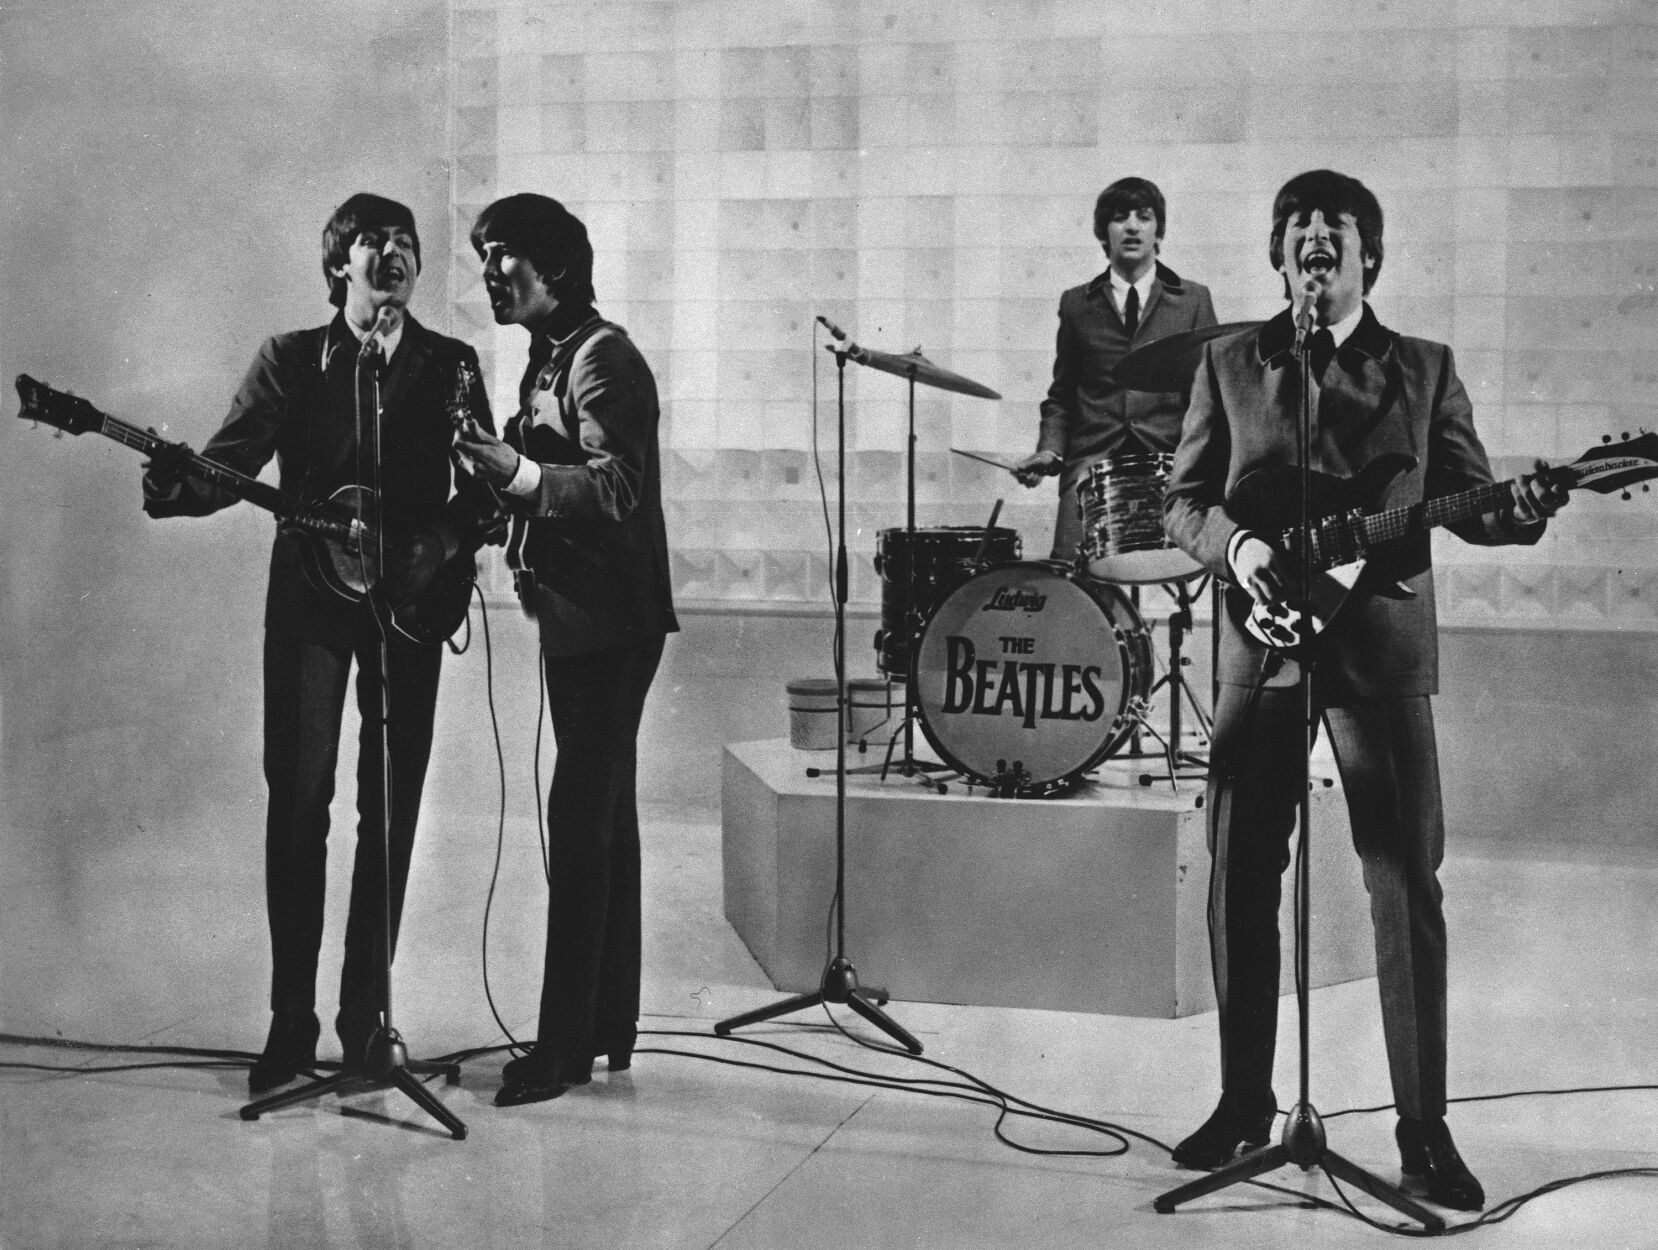 """<p>The Beatles are seen performing, date unknown. From left to right: Paul McCartney, George Harrison, Ringo Starr, and John Lennon. McCartney has revisited the breakup of The Beatles, refuting the suggestion that he was responsible for the group's demise. Speaking on an episode of BBC Radio 4's """"This Cultural Life"""" that is scheduled to air Oct. 23, McCartney said it was John Lennon who wanted to disband The Beatles.</p>"""